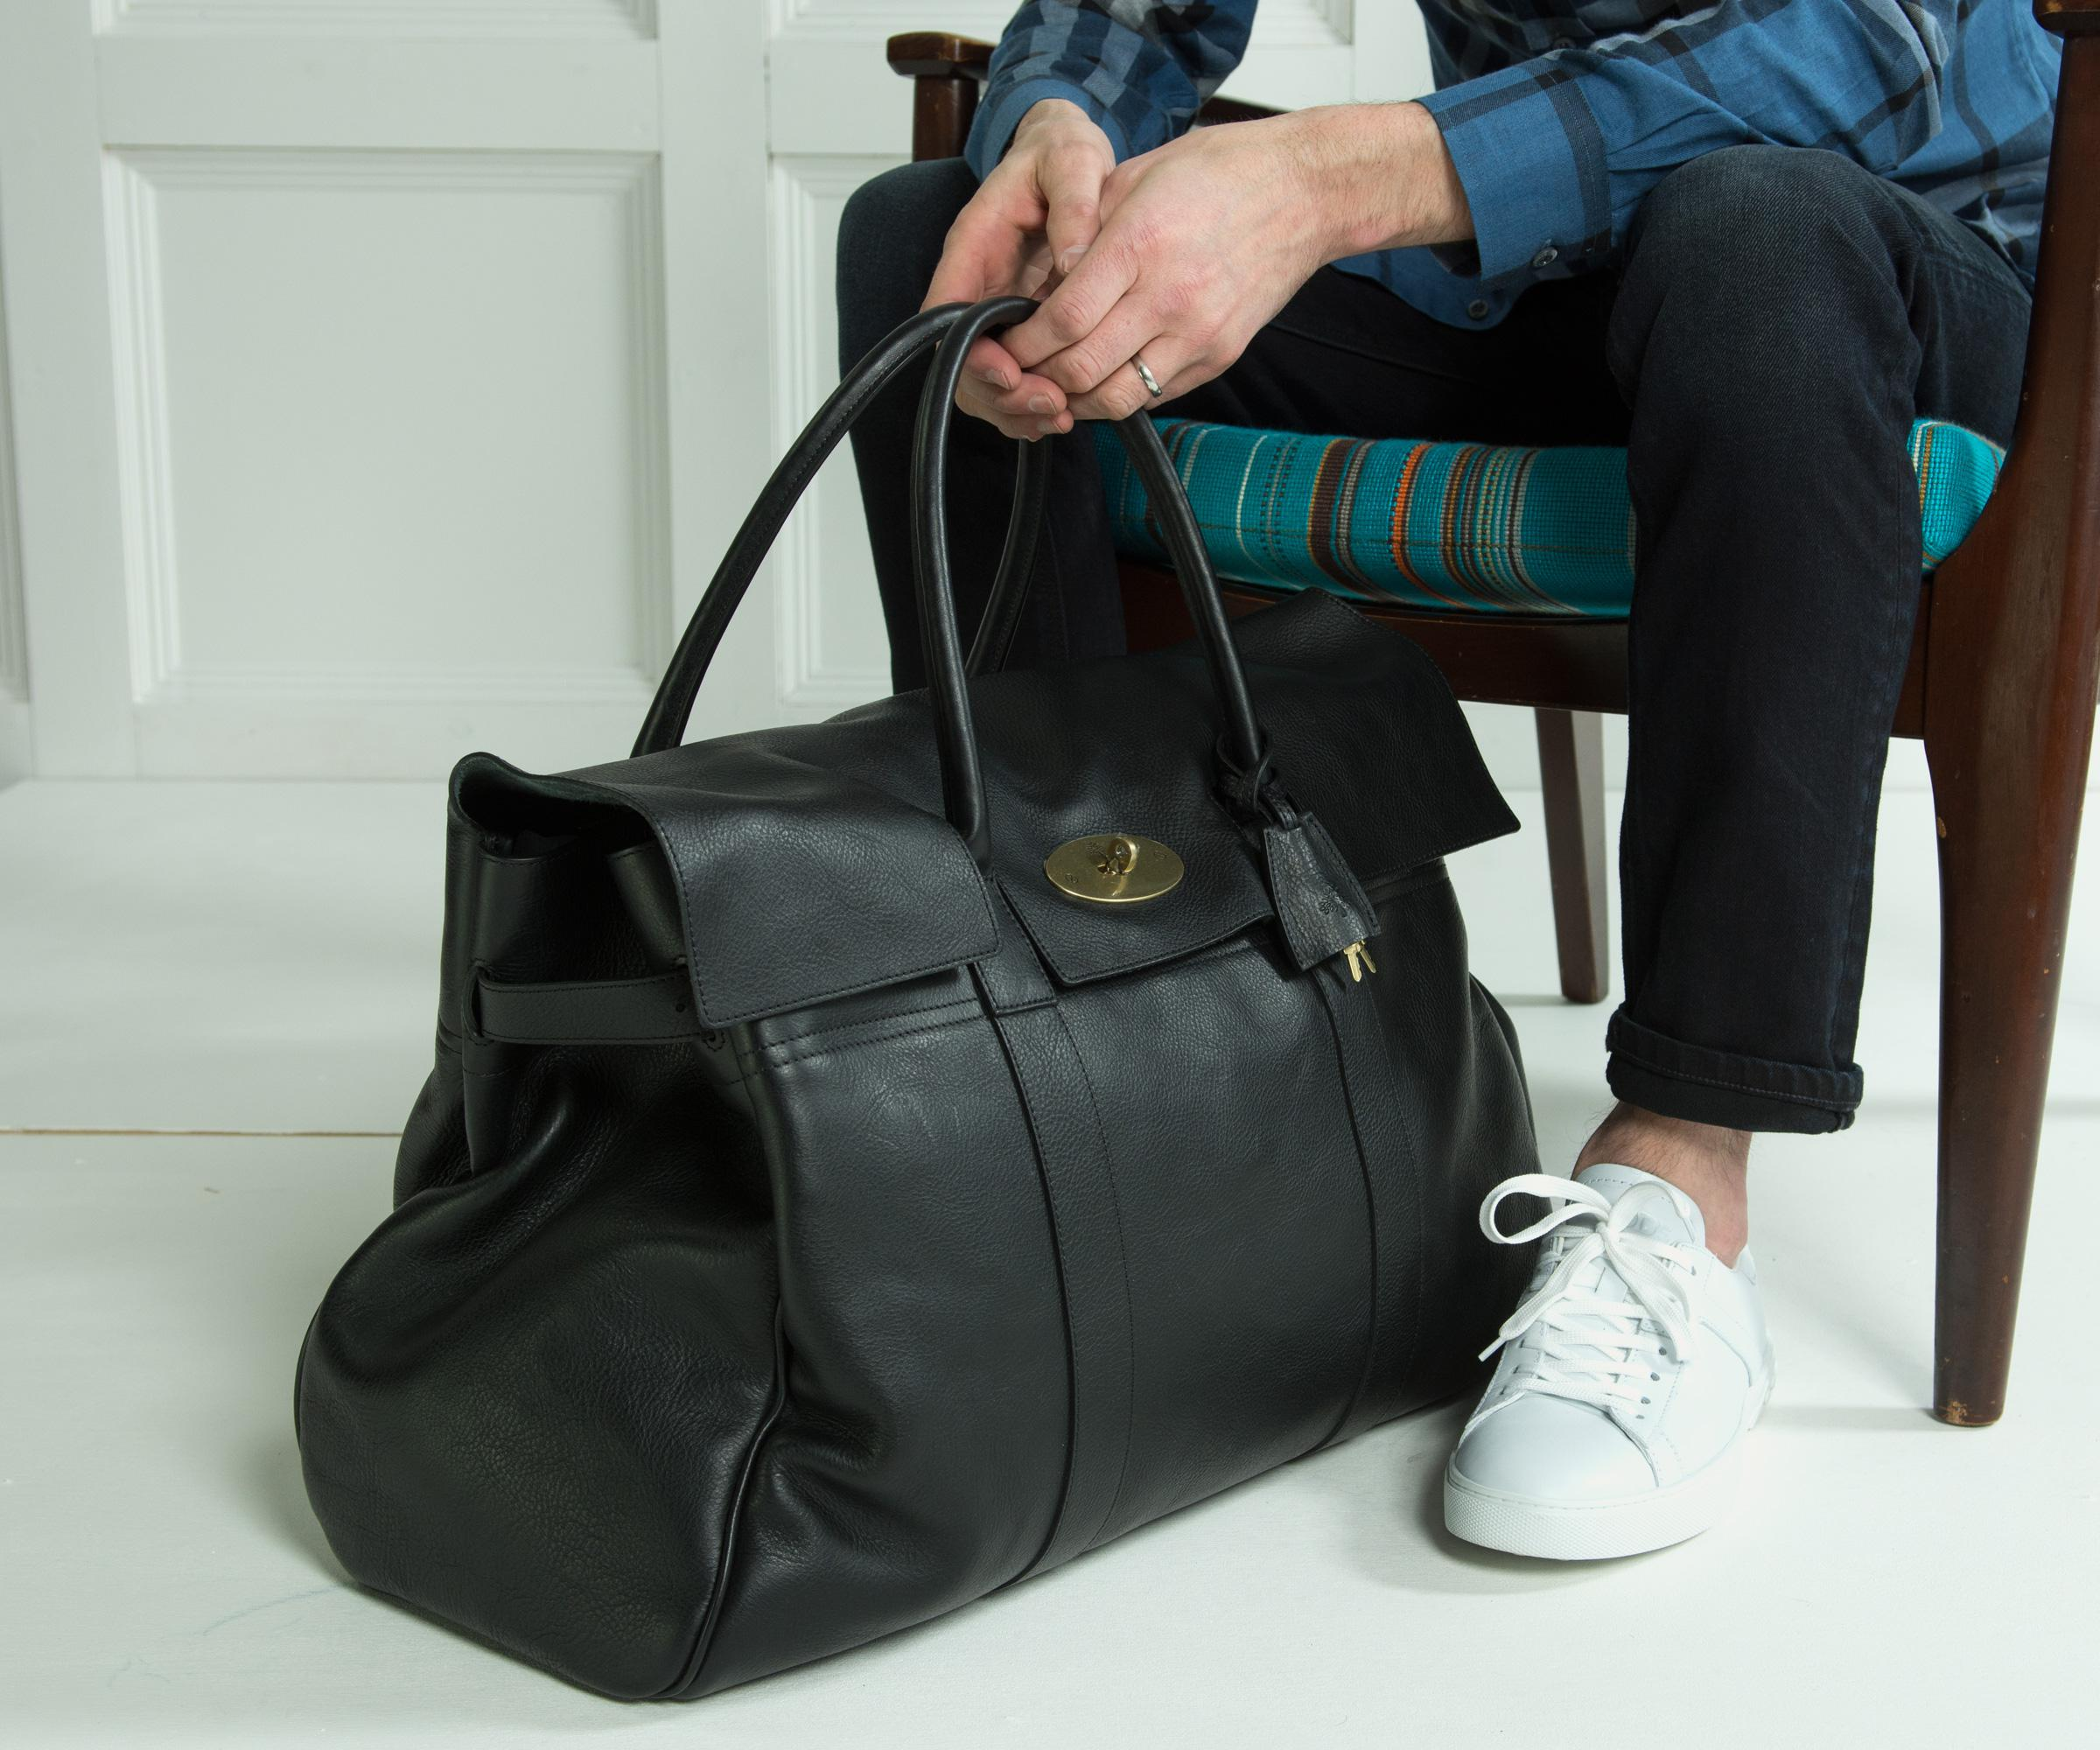 Lyst - Mulberry Piccadilly Leather Weekend Bag Black in Black for Men de0d9dce48673